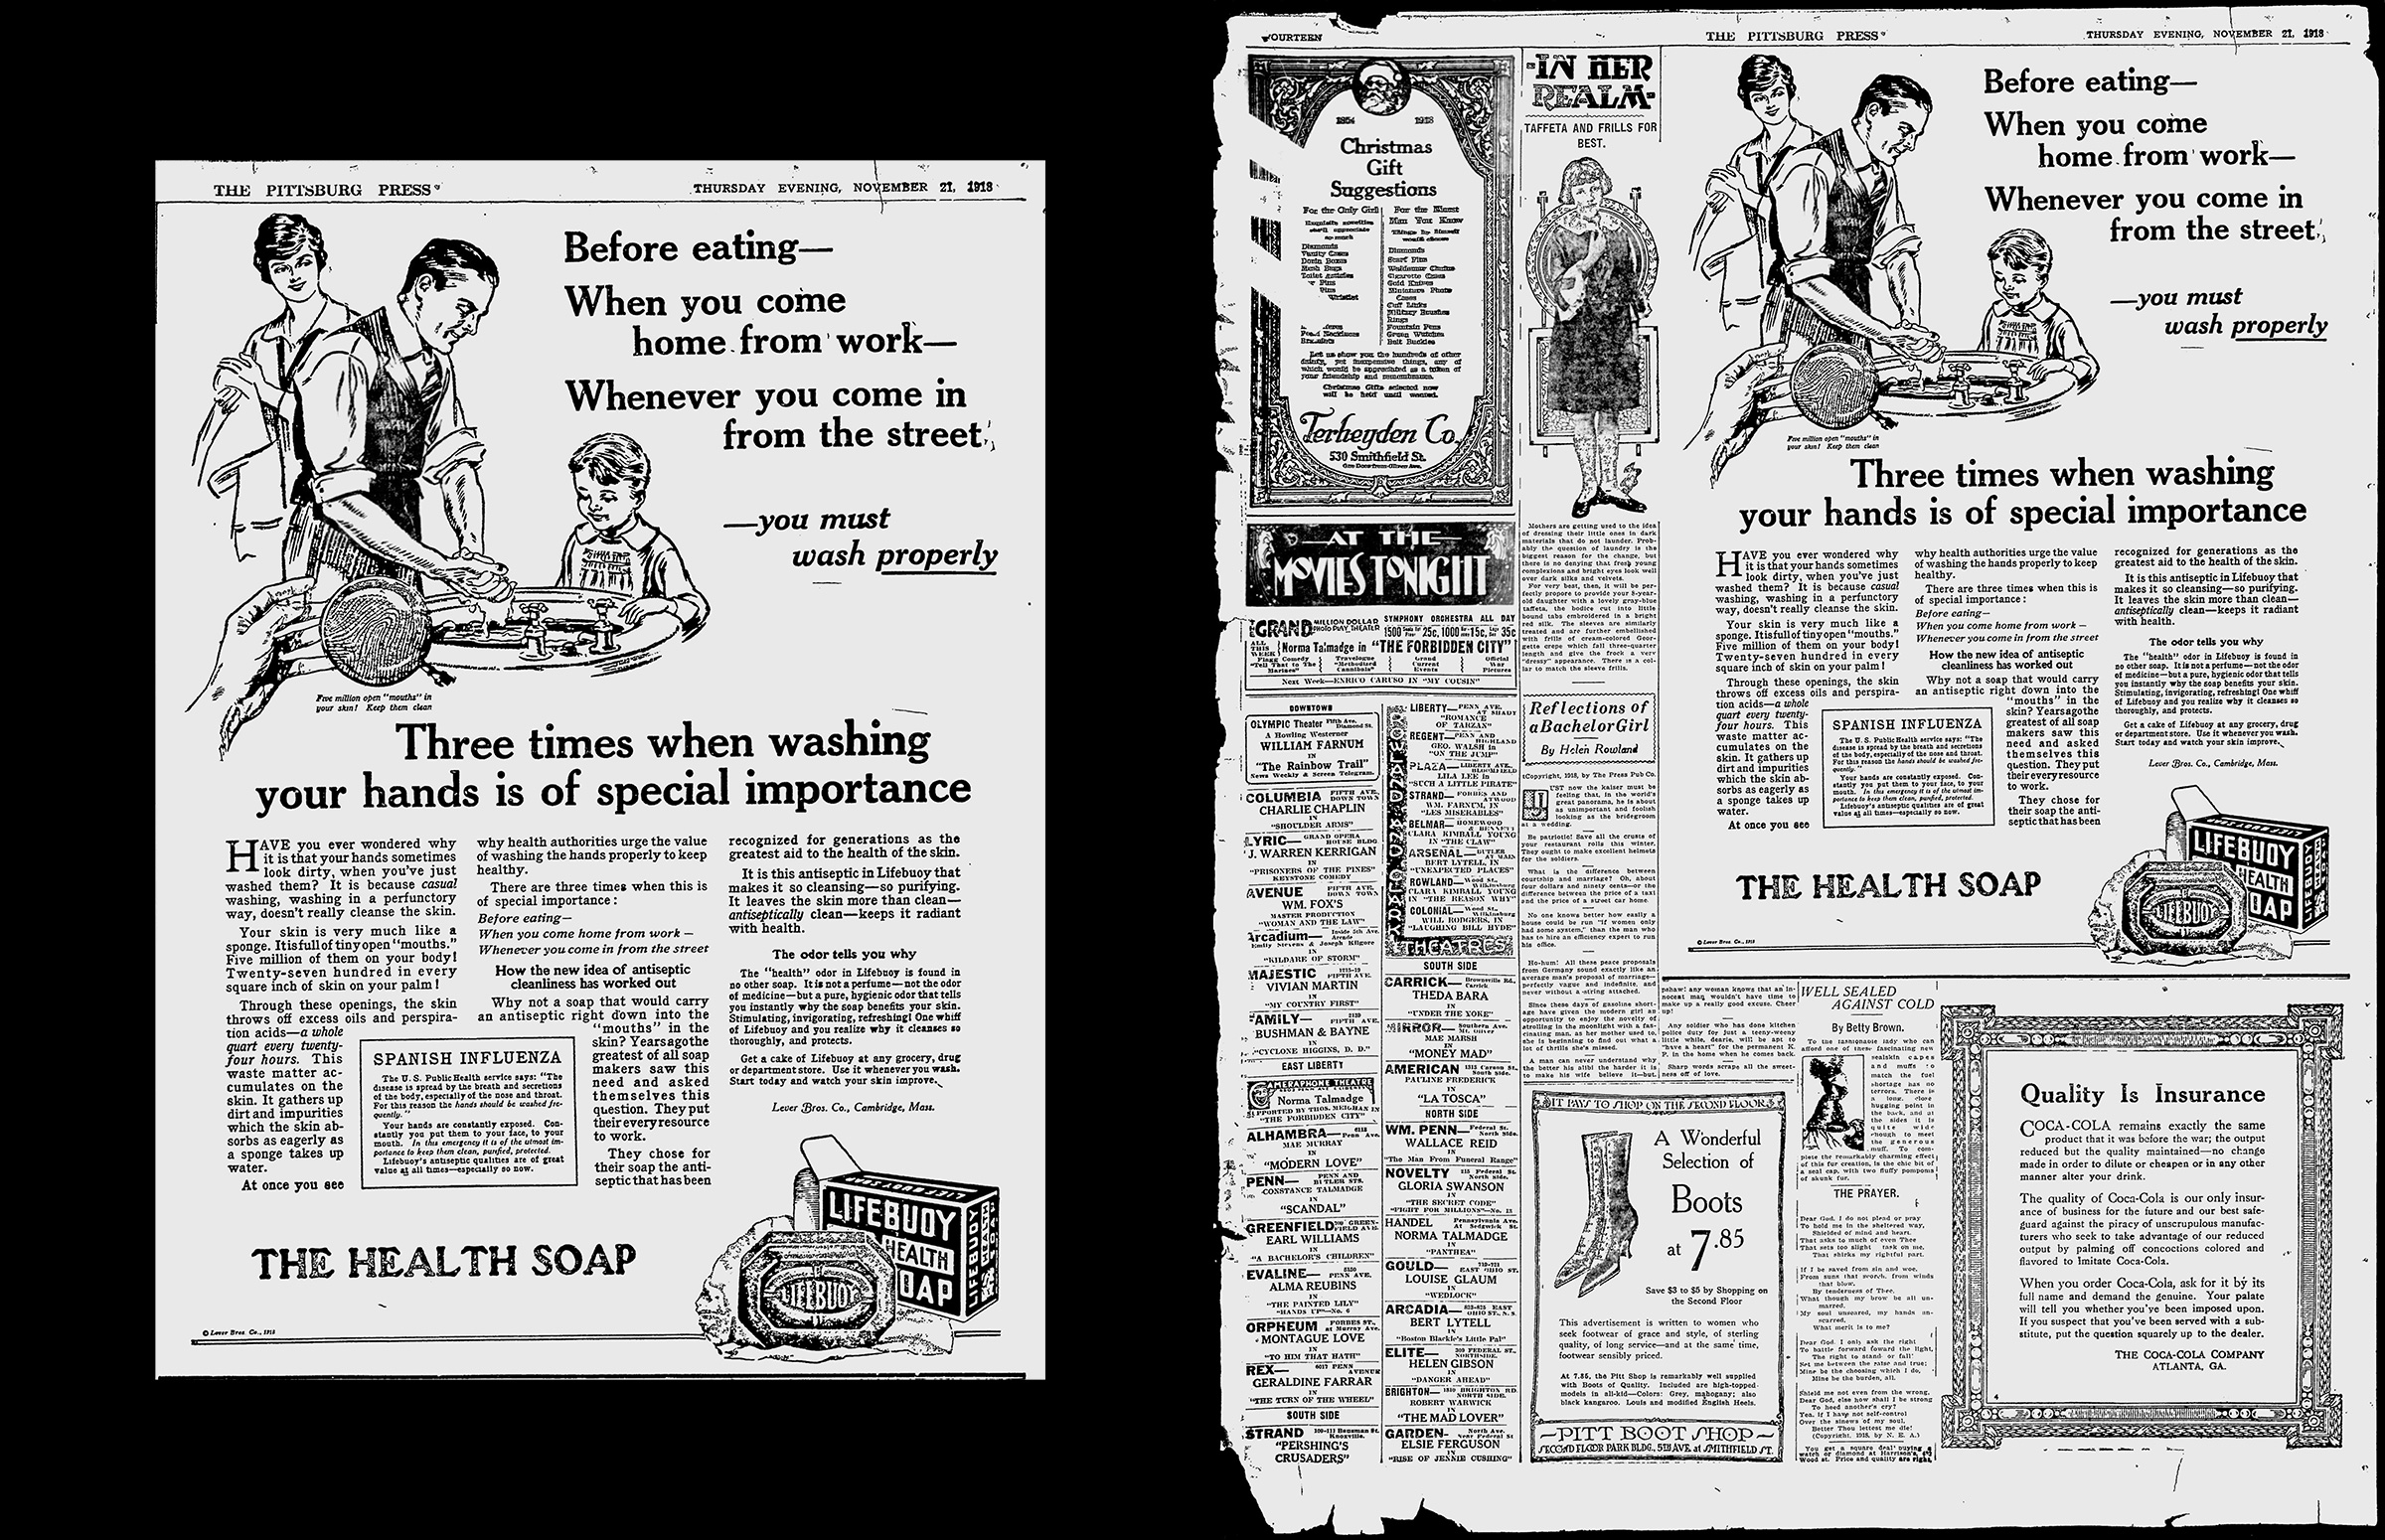 You need to wash properly. 'Newspaper ads 1918 flu pandemic Show Some things never change